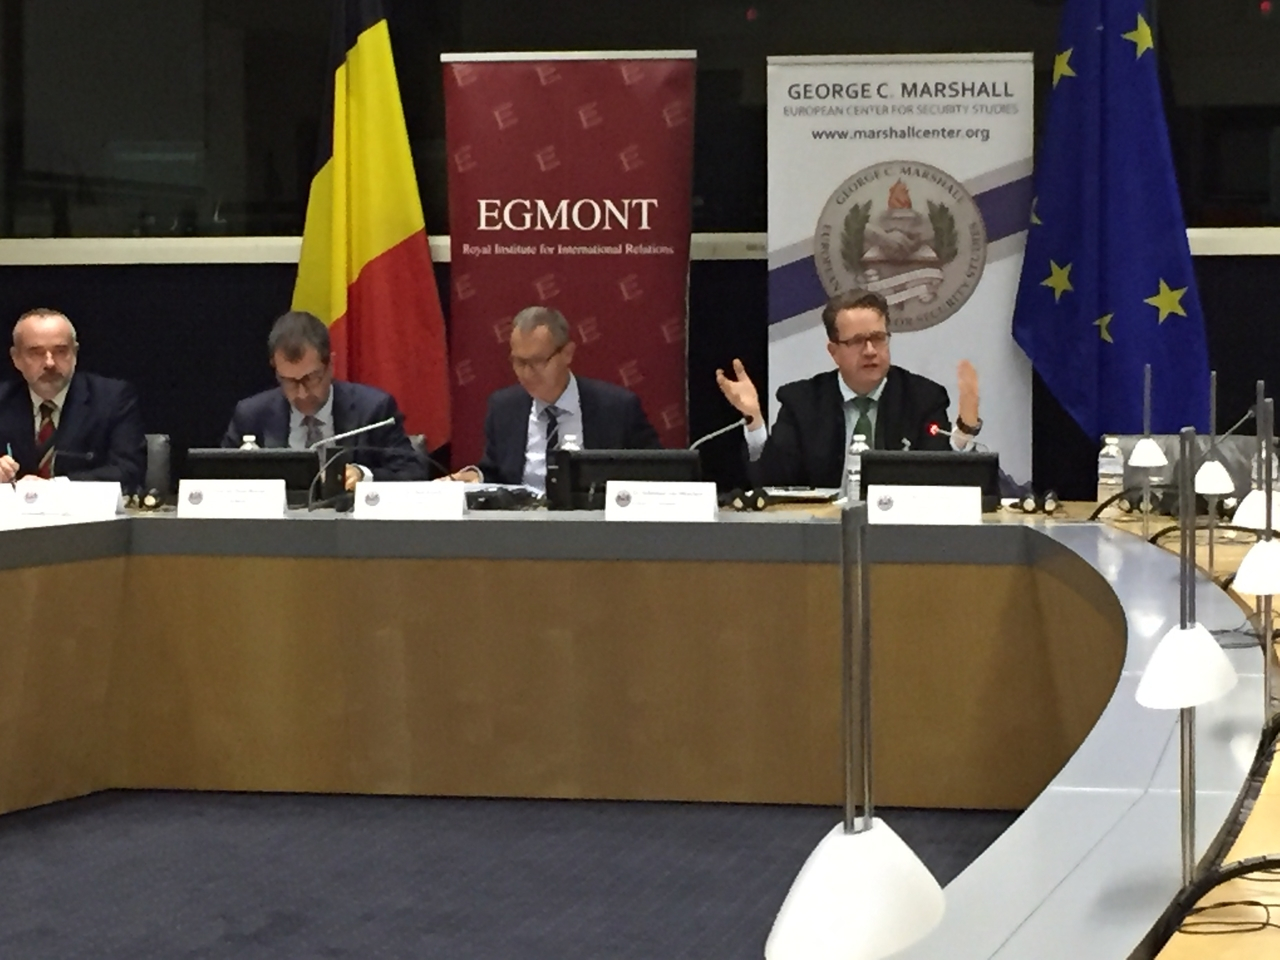 Marshall Center Hosts Strategic Workshop in Brussels